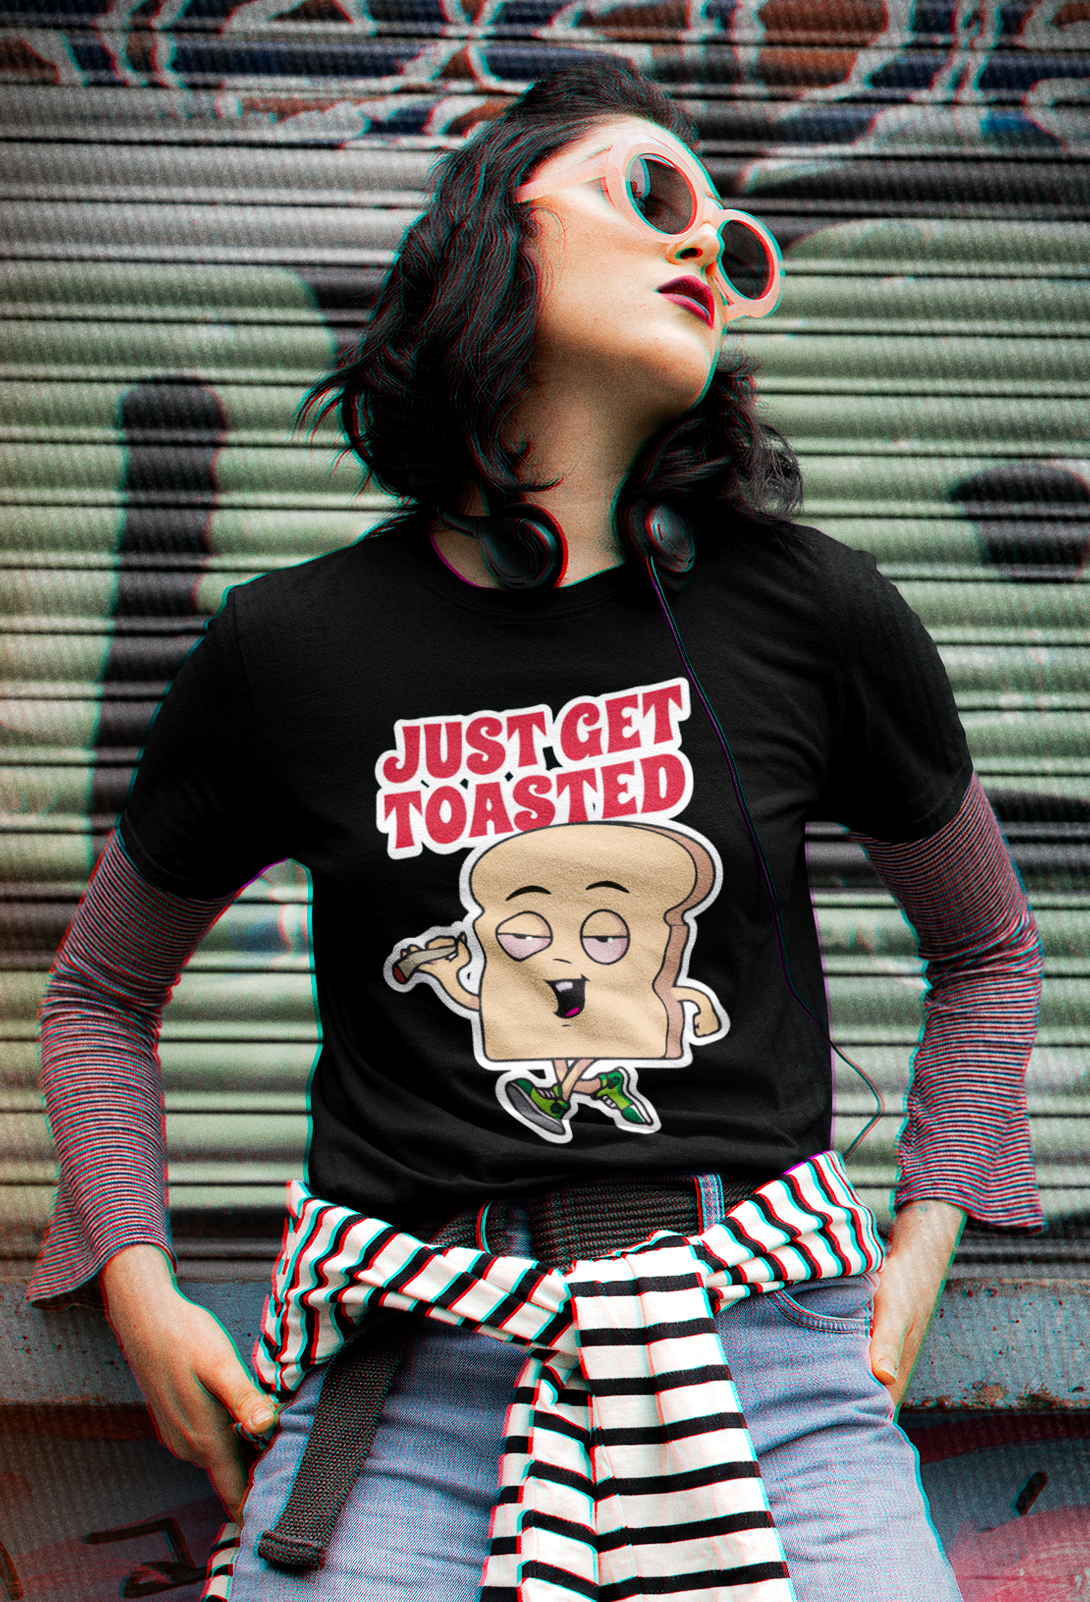 toasted_just get high_model